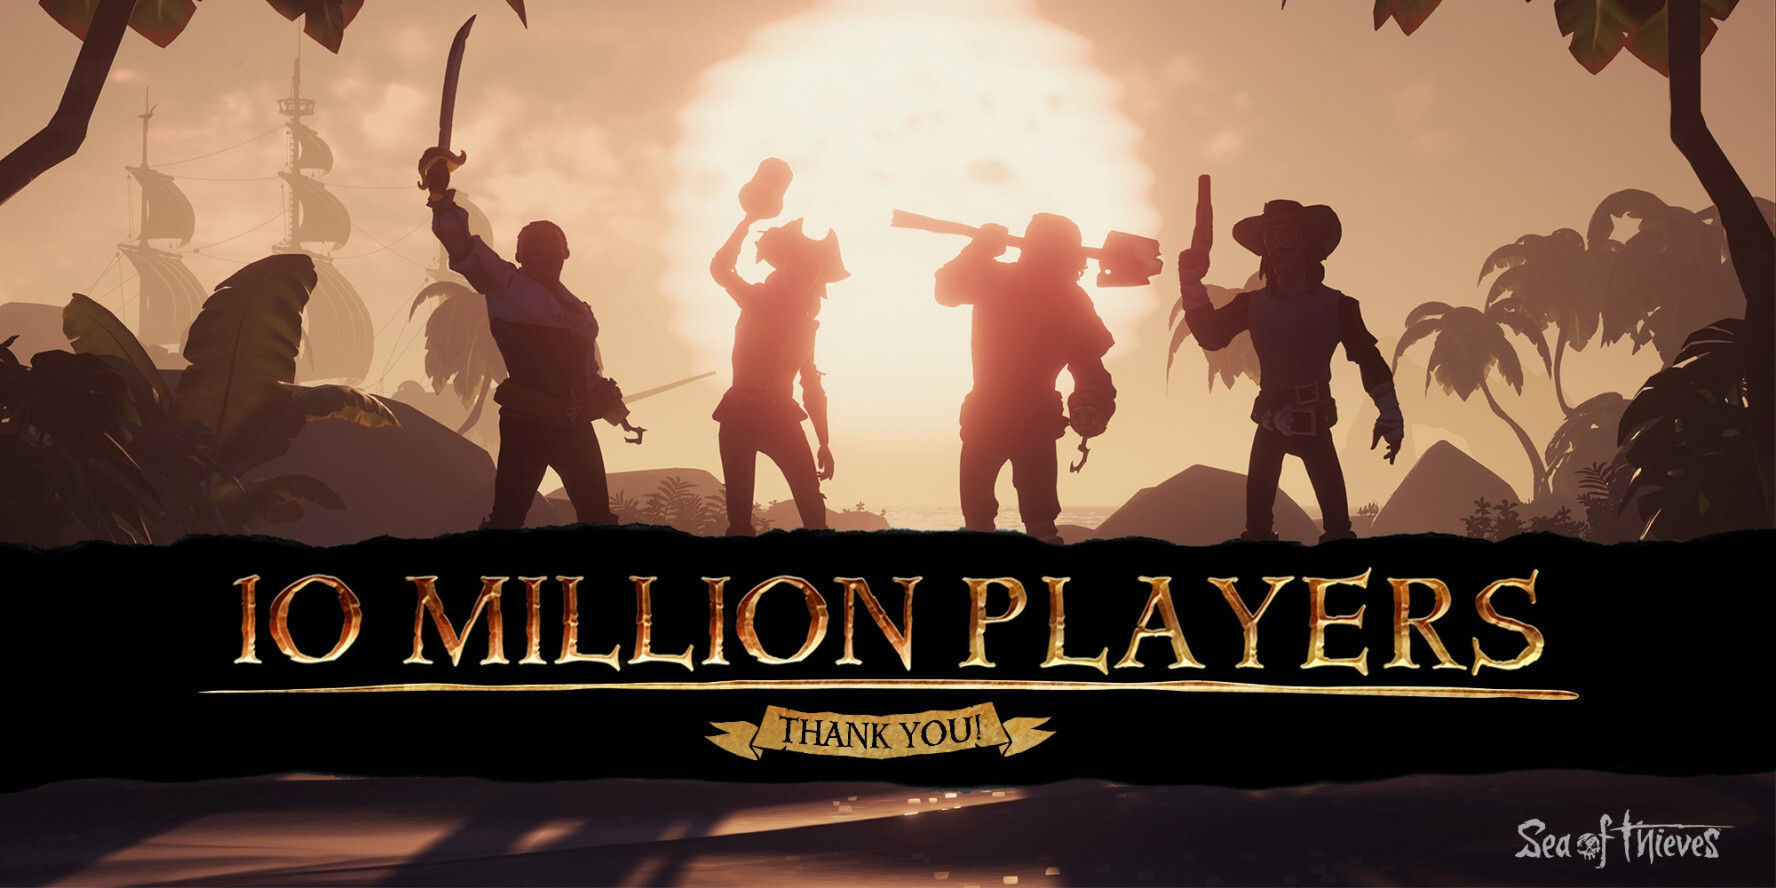 Sea of Thieves more than 10 million players since its launch